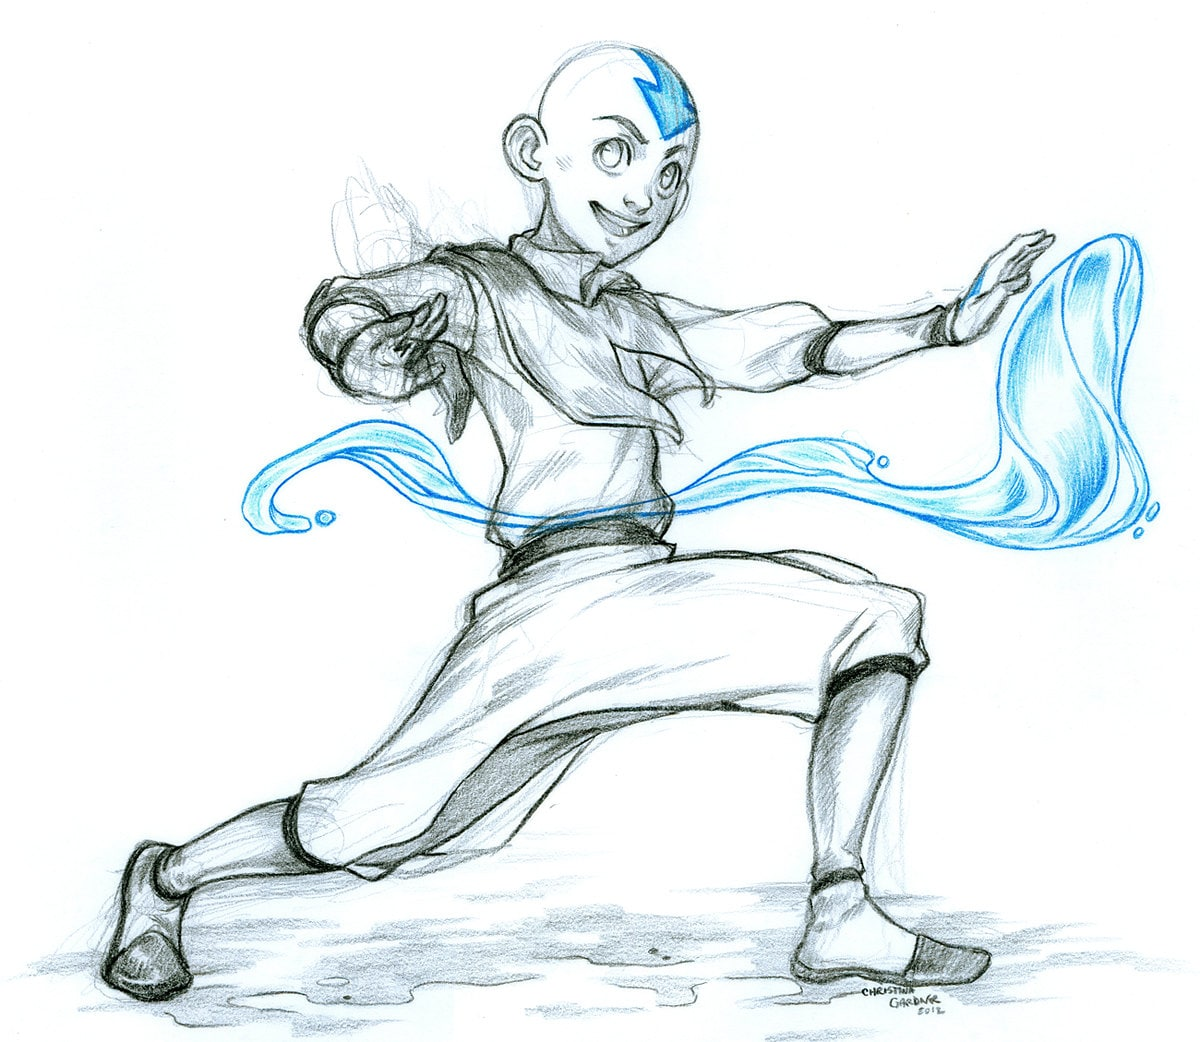 Avatar Aang Drawings: Avatar The Last Airbender Aang Sketch Fanart By Curry23 On